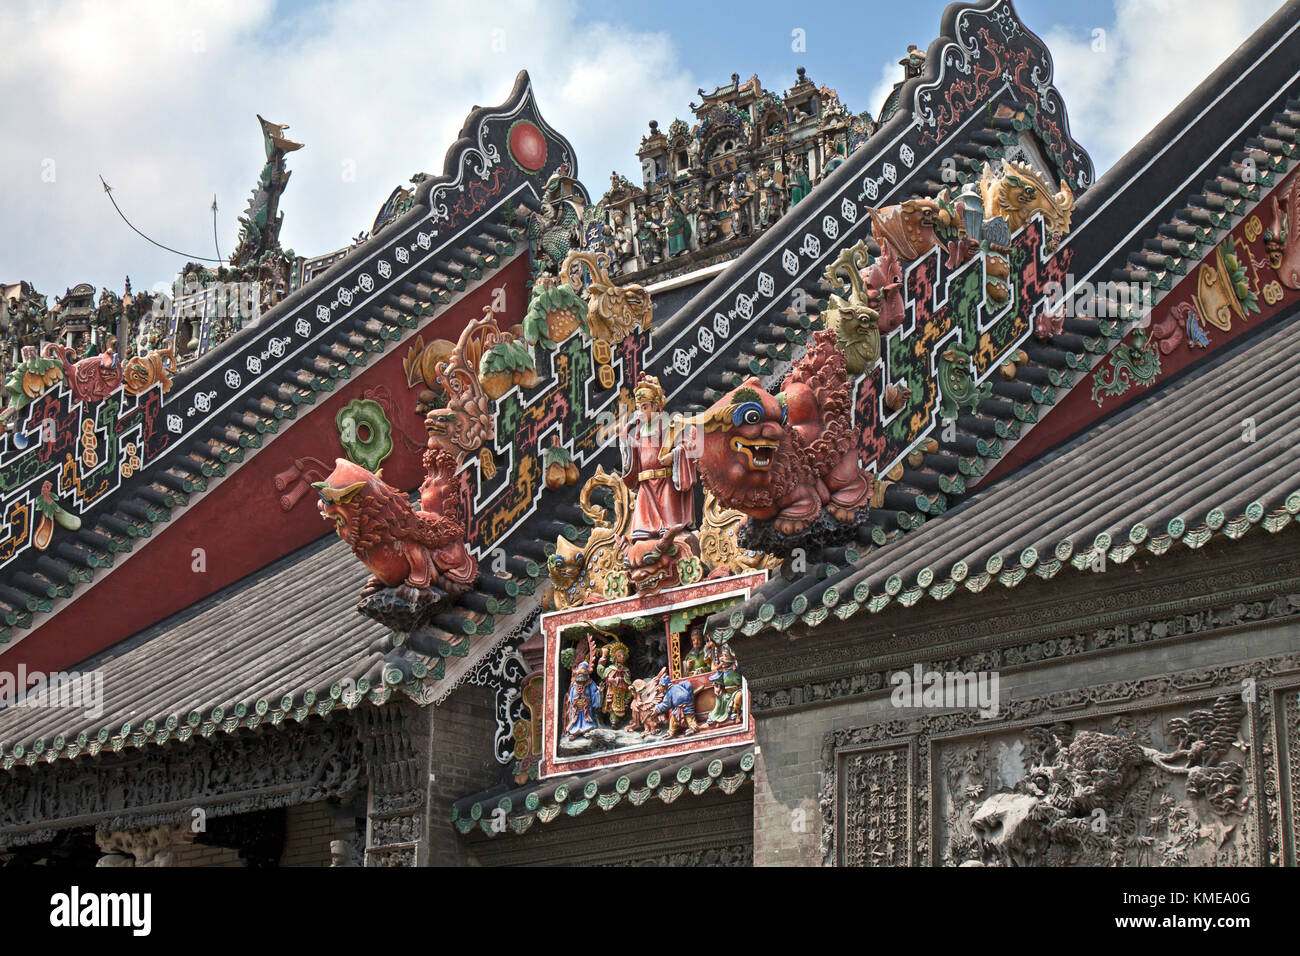 Roofing art detail, The Chen Clan Ancestral Hall in Guangzhou, China. Built by the 72 Chen clans for their juniors' - Stock Image